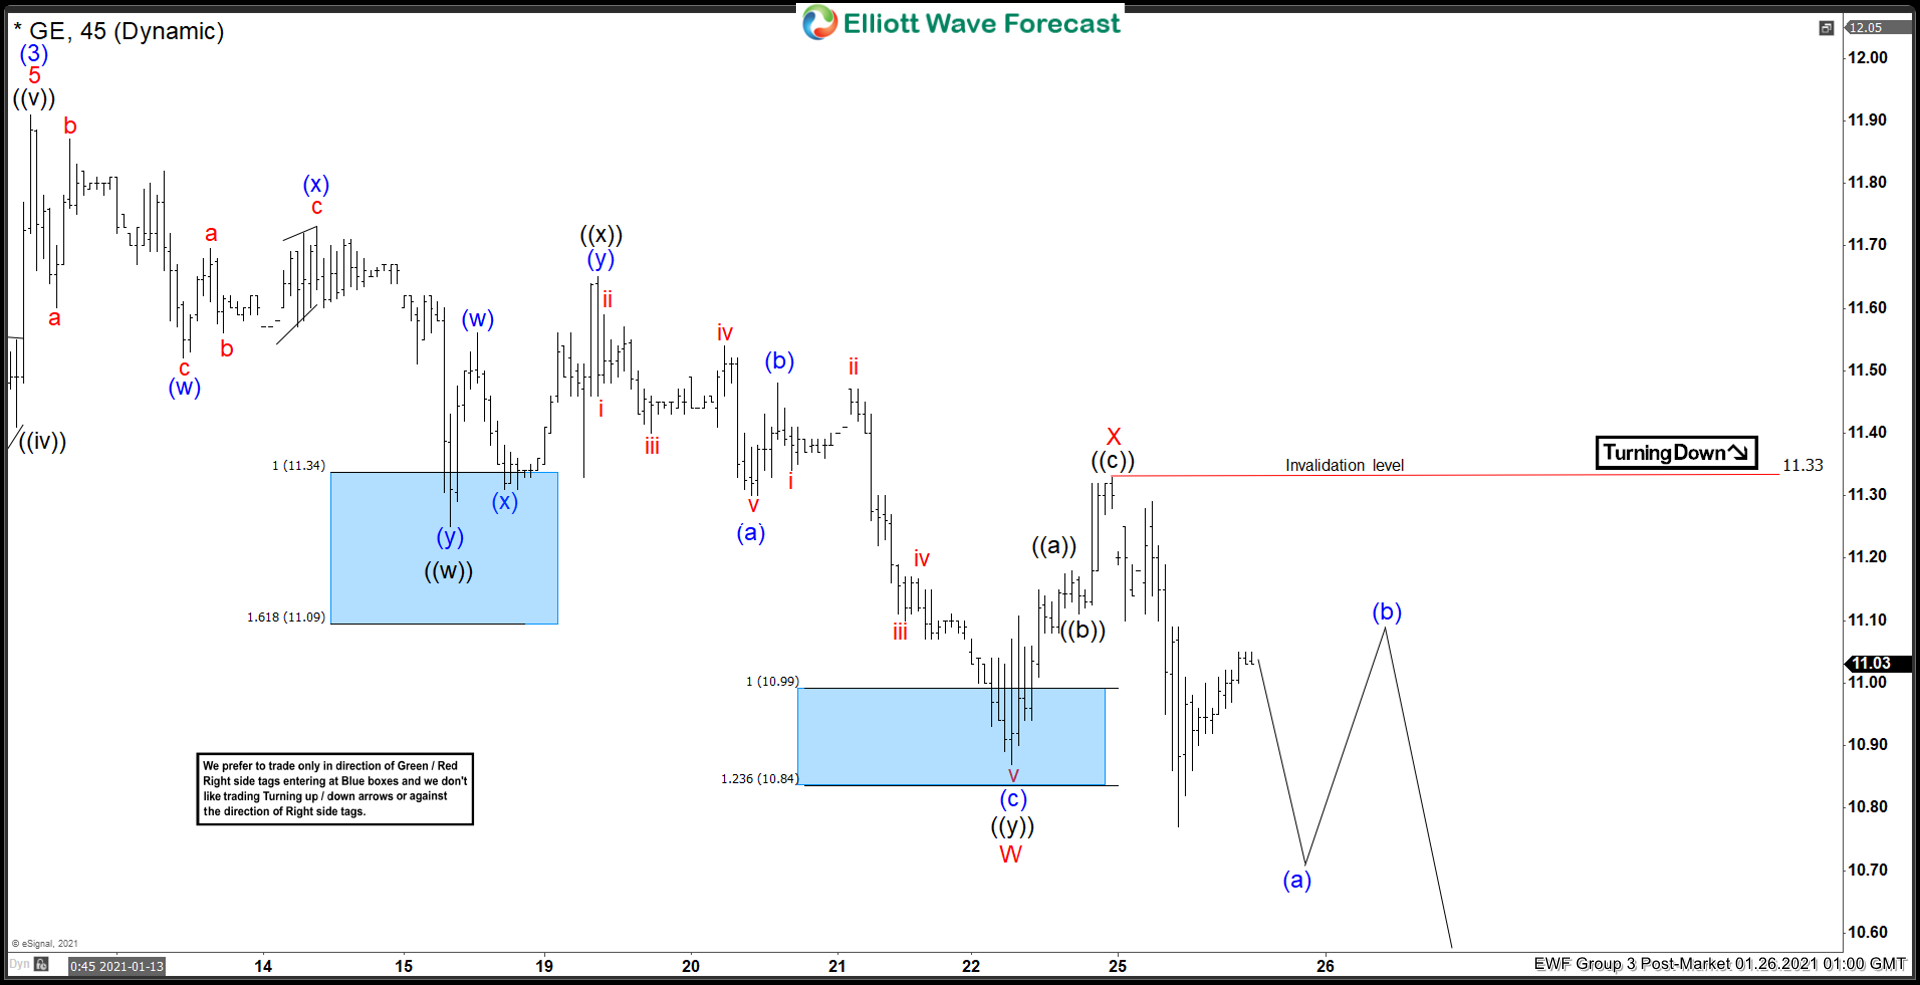 Elliott Wave View: General Electric (GE) Has Further Downside in Correction